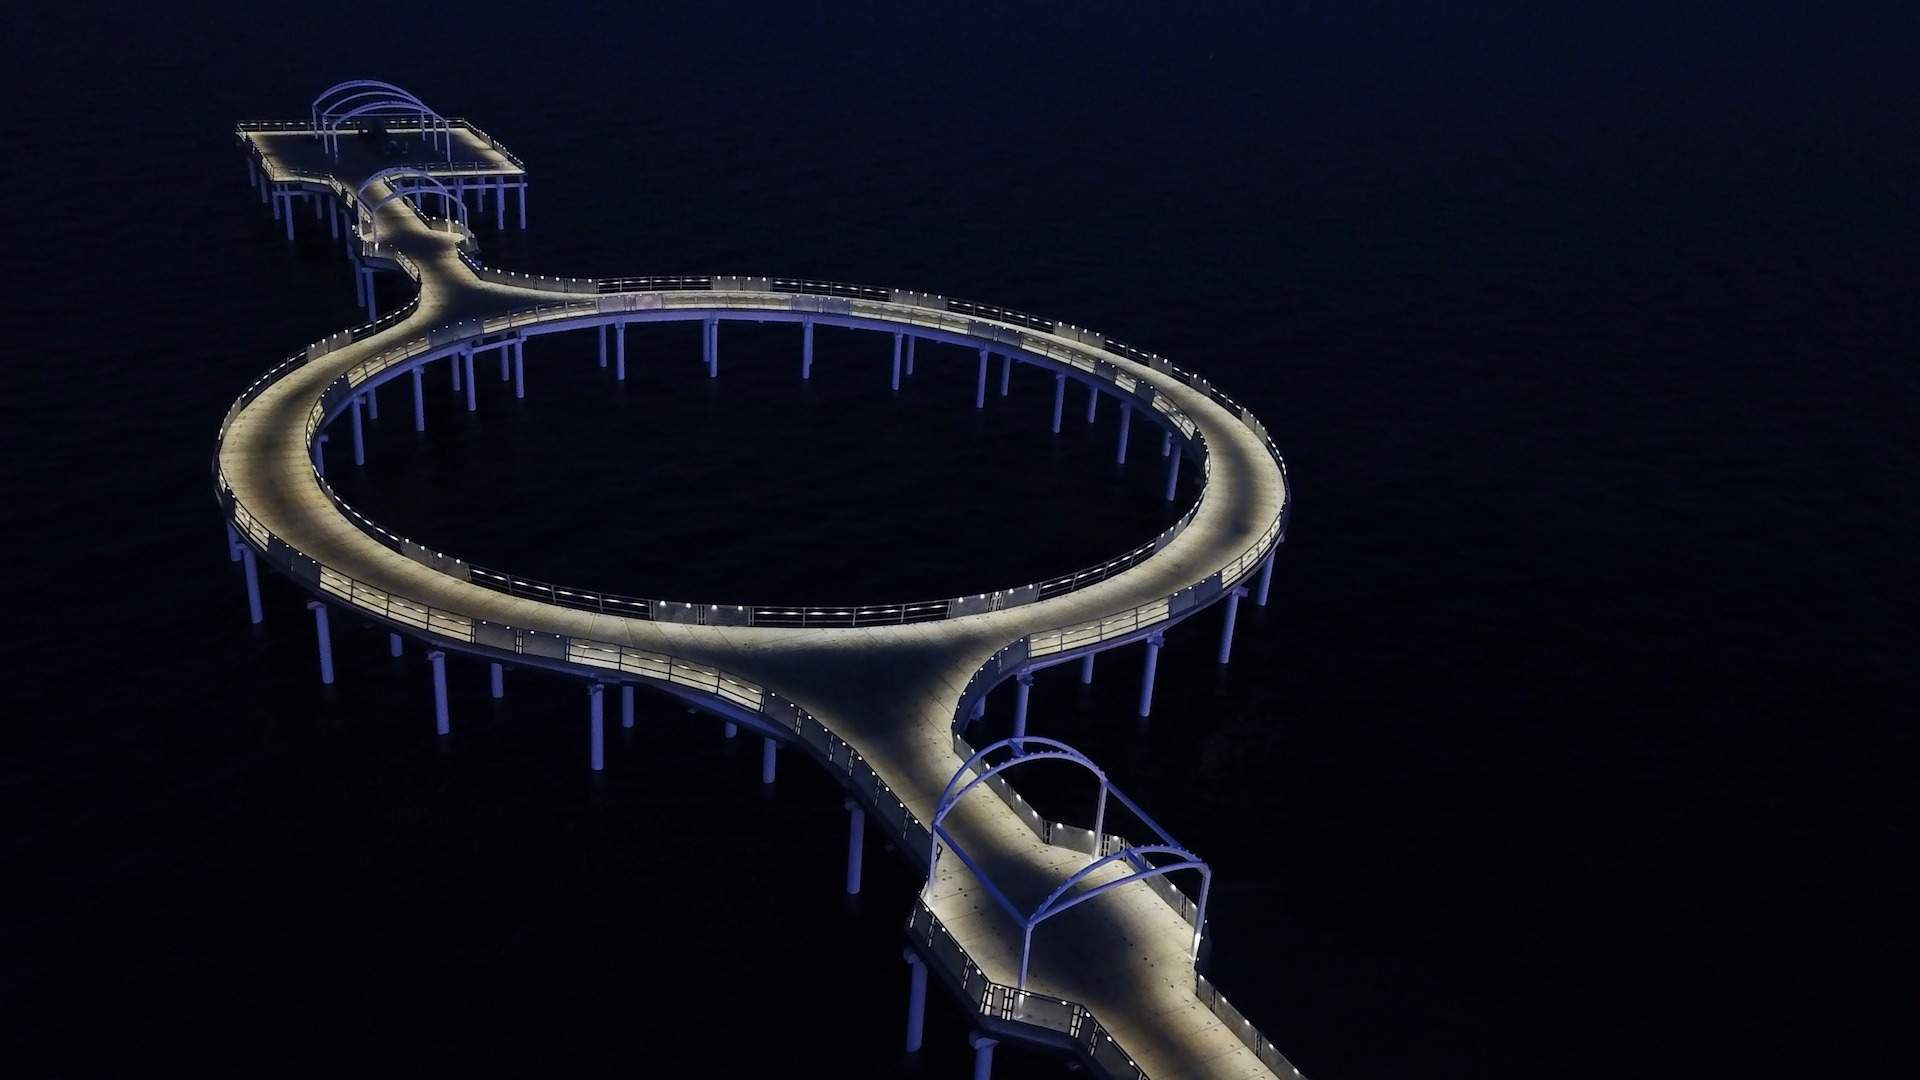 The South Australian City of Whyalla Is Now Home to a Spectacular New LED-Lit Circular Jetty